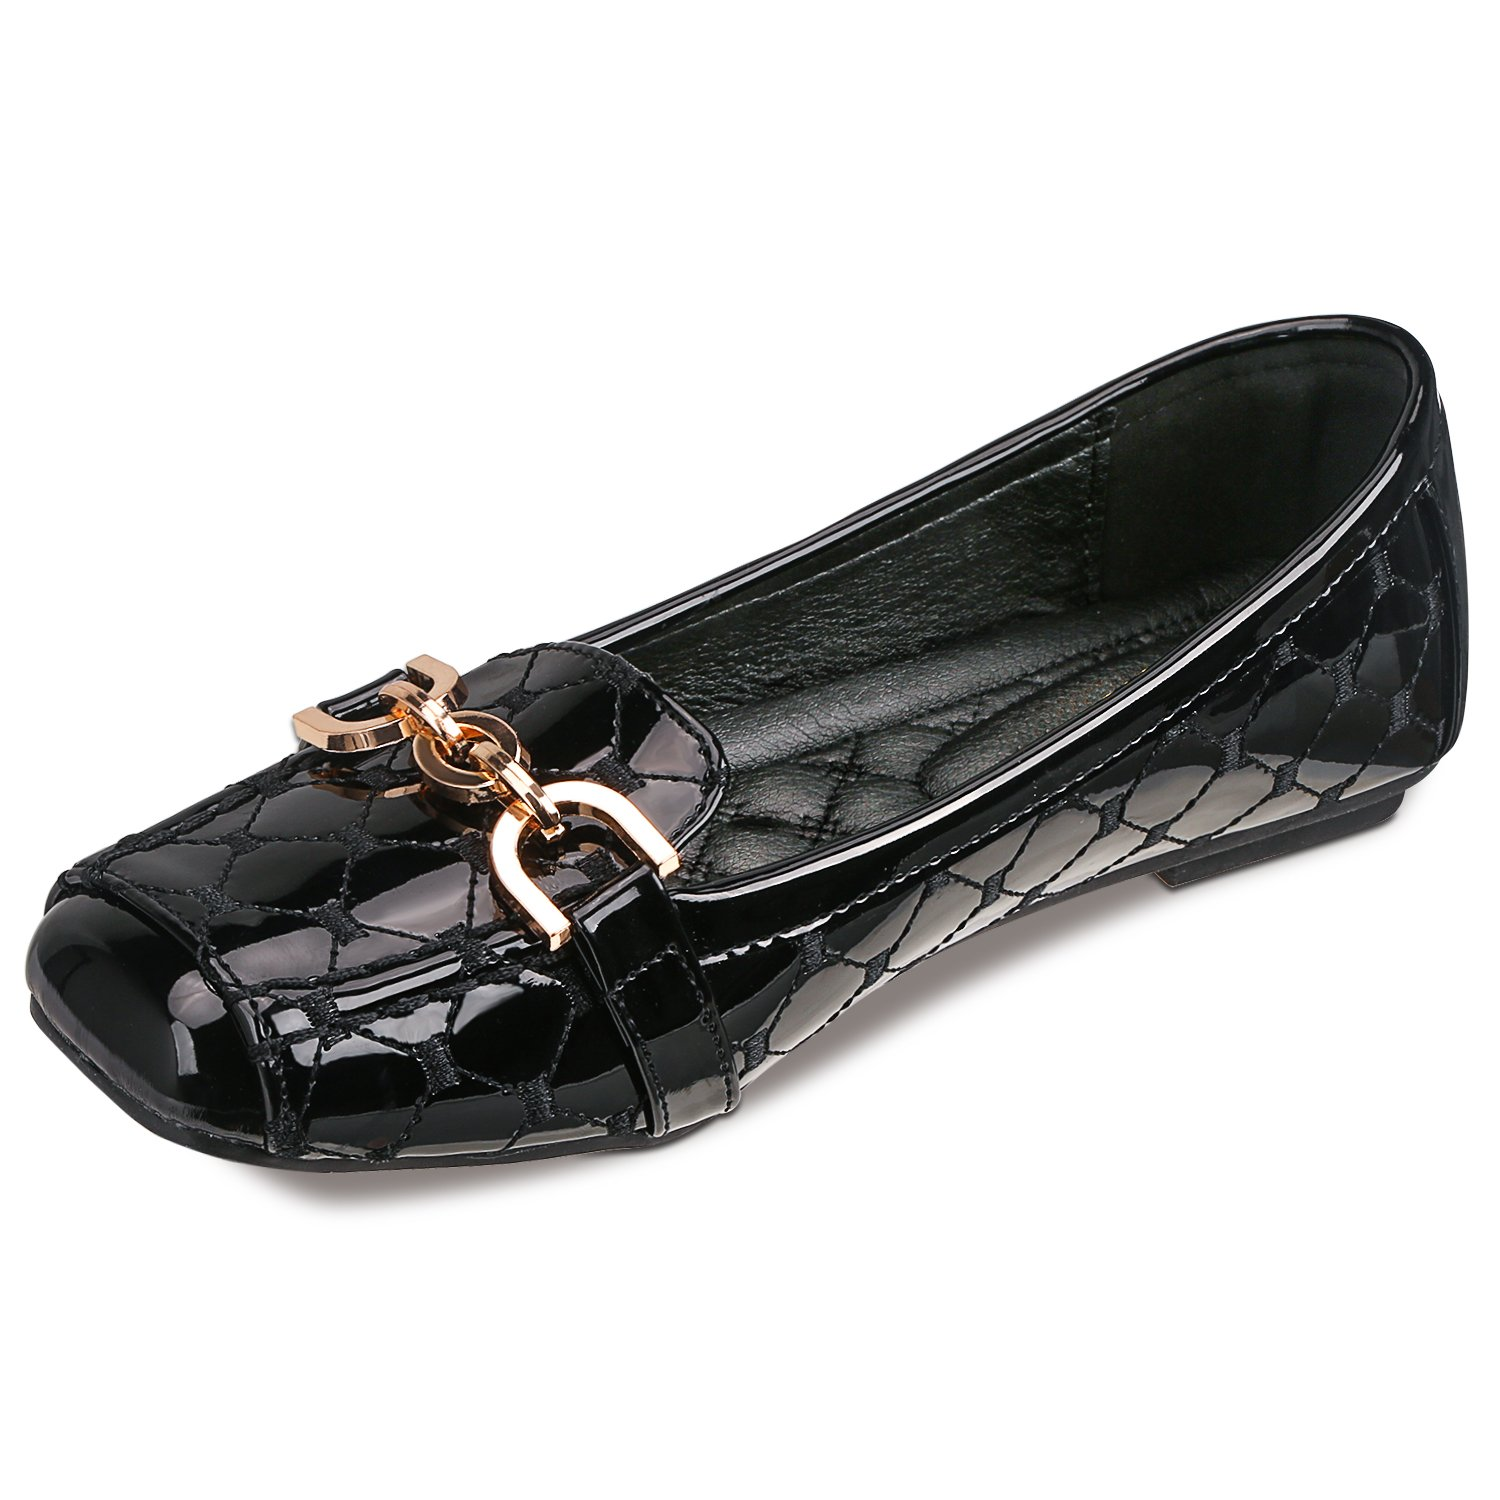 cute for women the shoes haan avery cole ballet most comforter fashion flats comfortable